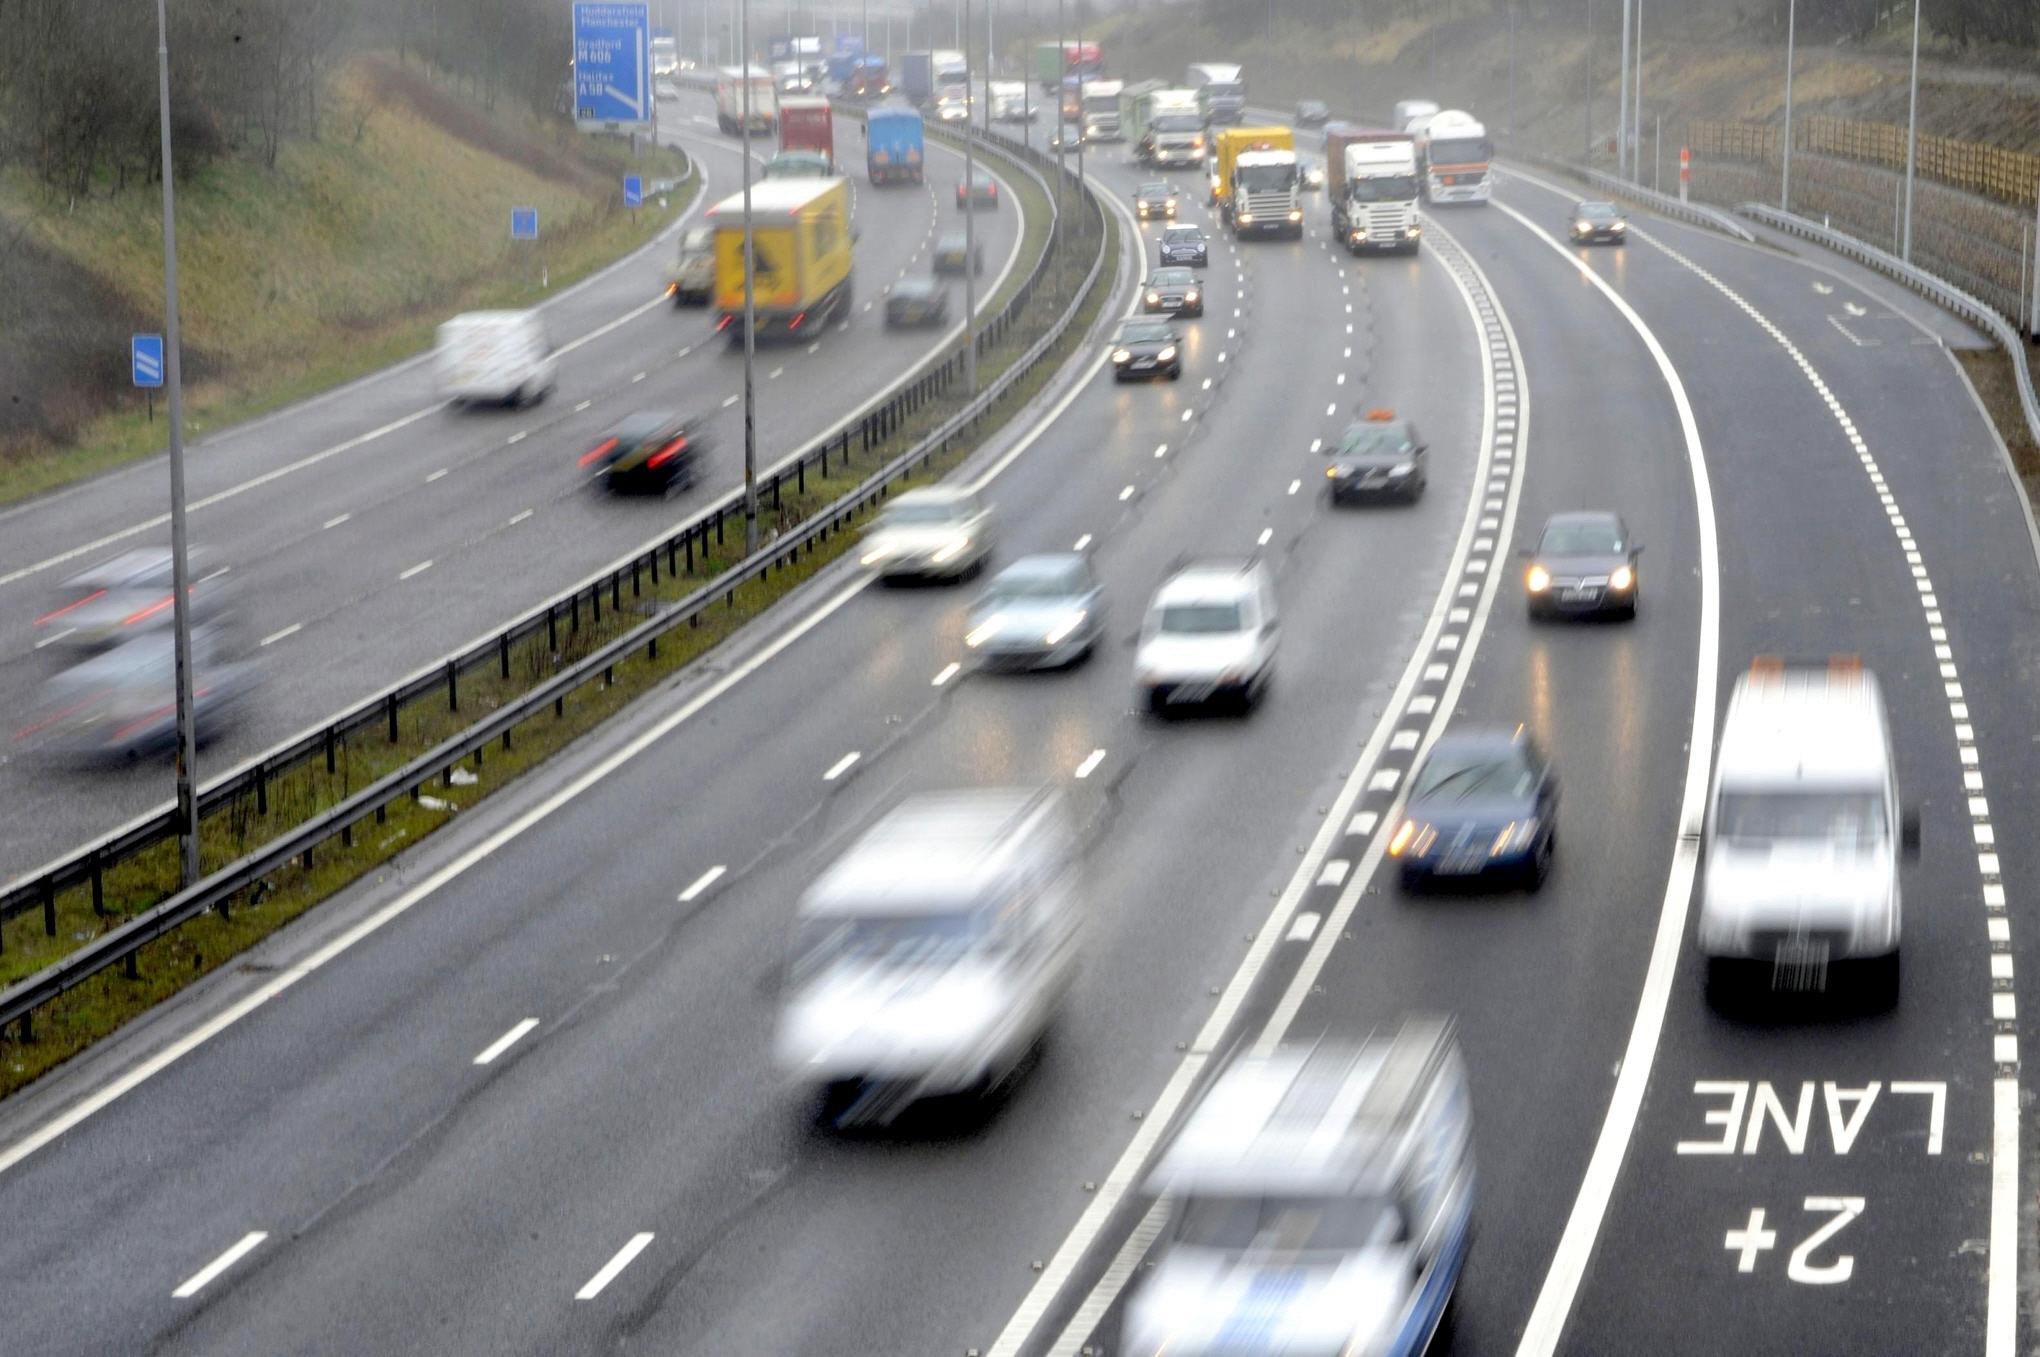 West Yorkshire has highest number of motorists caught at over 100mph